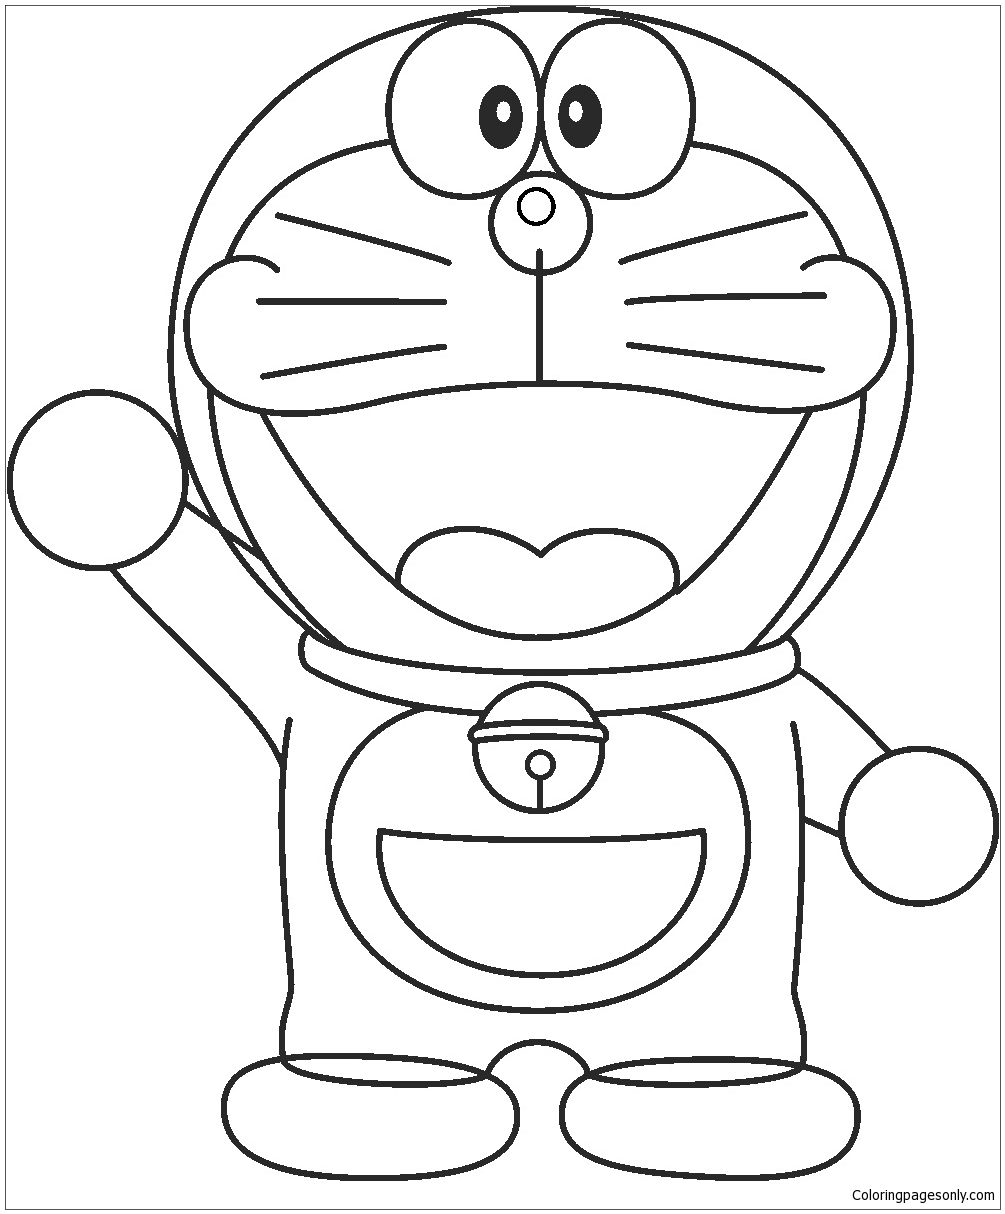 1005x1214 Doraemon Drawing For Kids Coloring Page